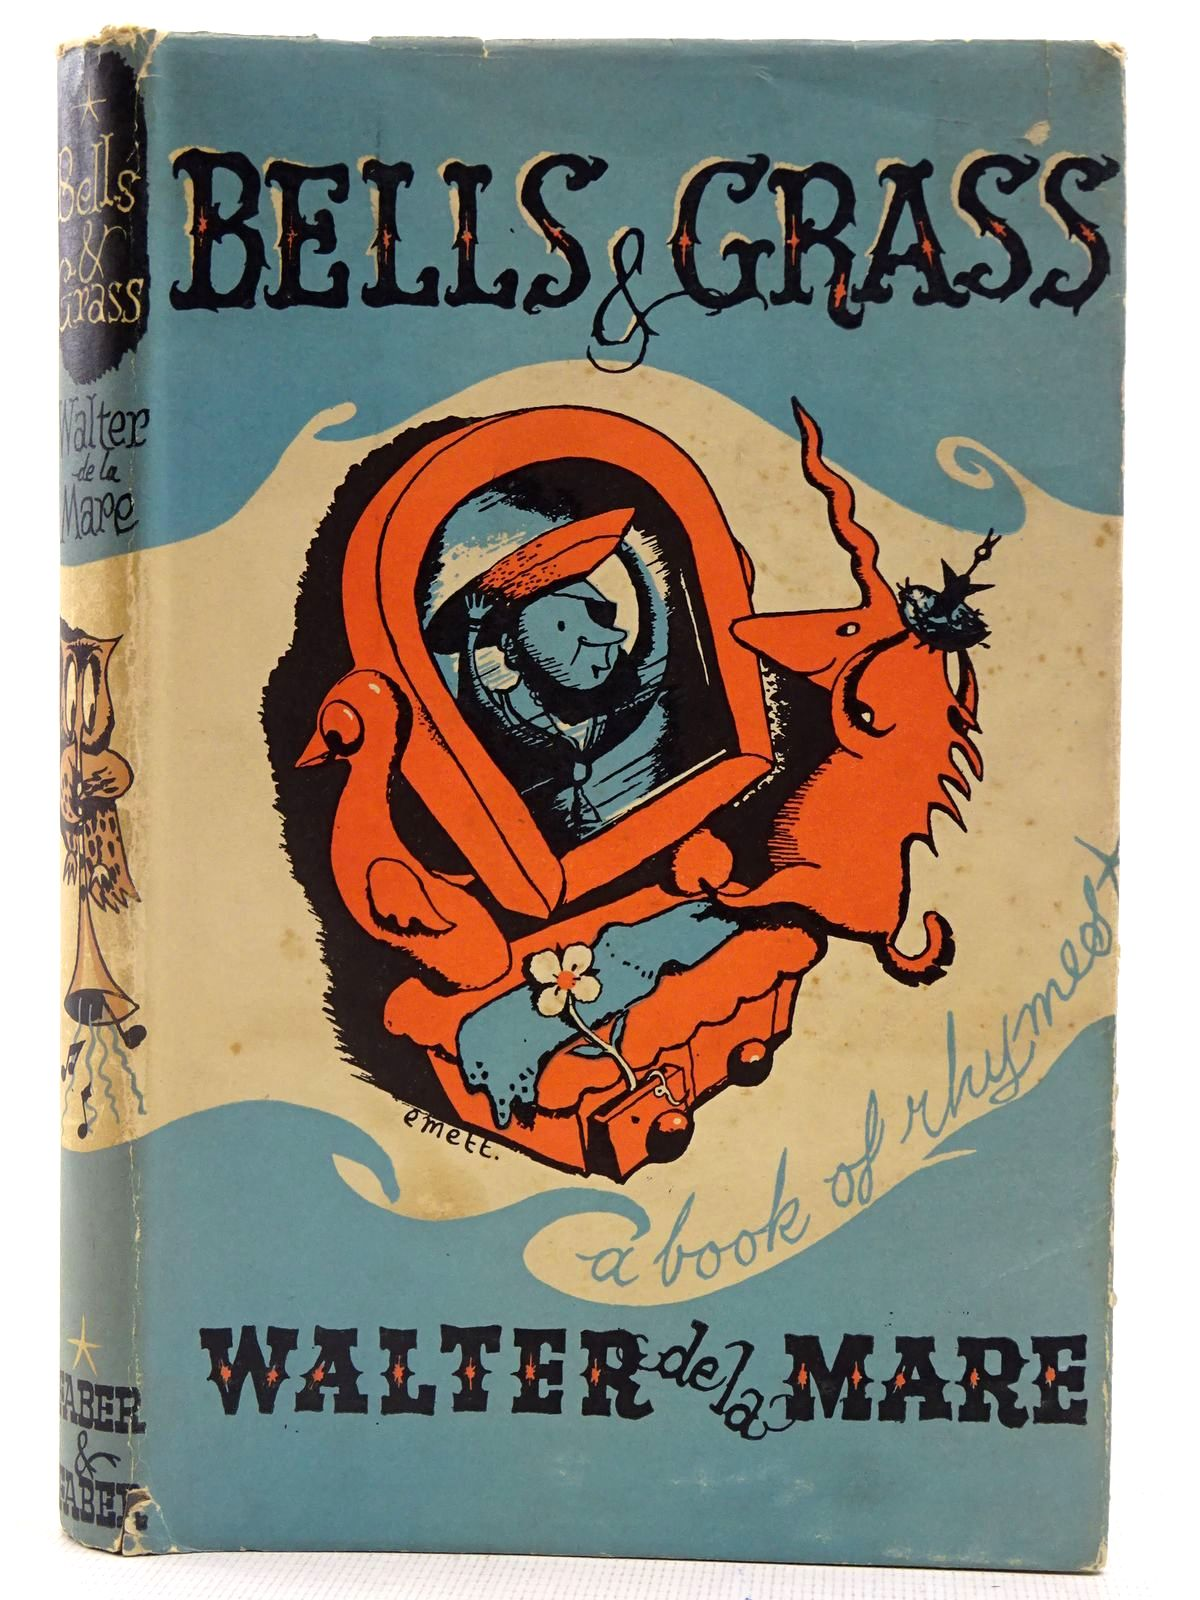 Photo of BELLS & GRASS written by De La Mare, Walter illustrated by Emett, Rowland published by Faber & Faber Ltd. (STOCK CODE: 2128249)  for sale by Stella & Rose's Books